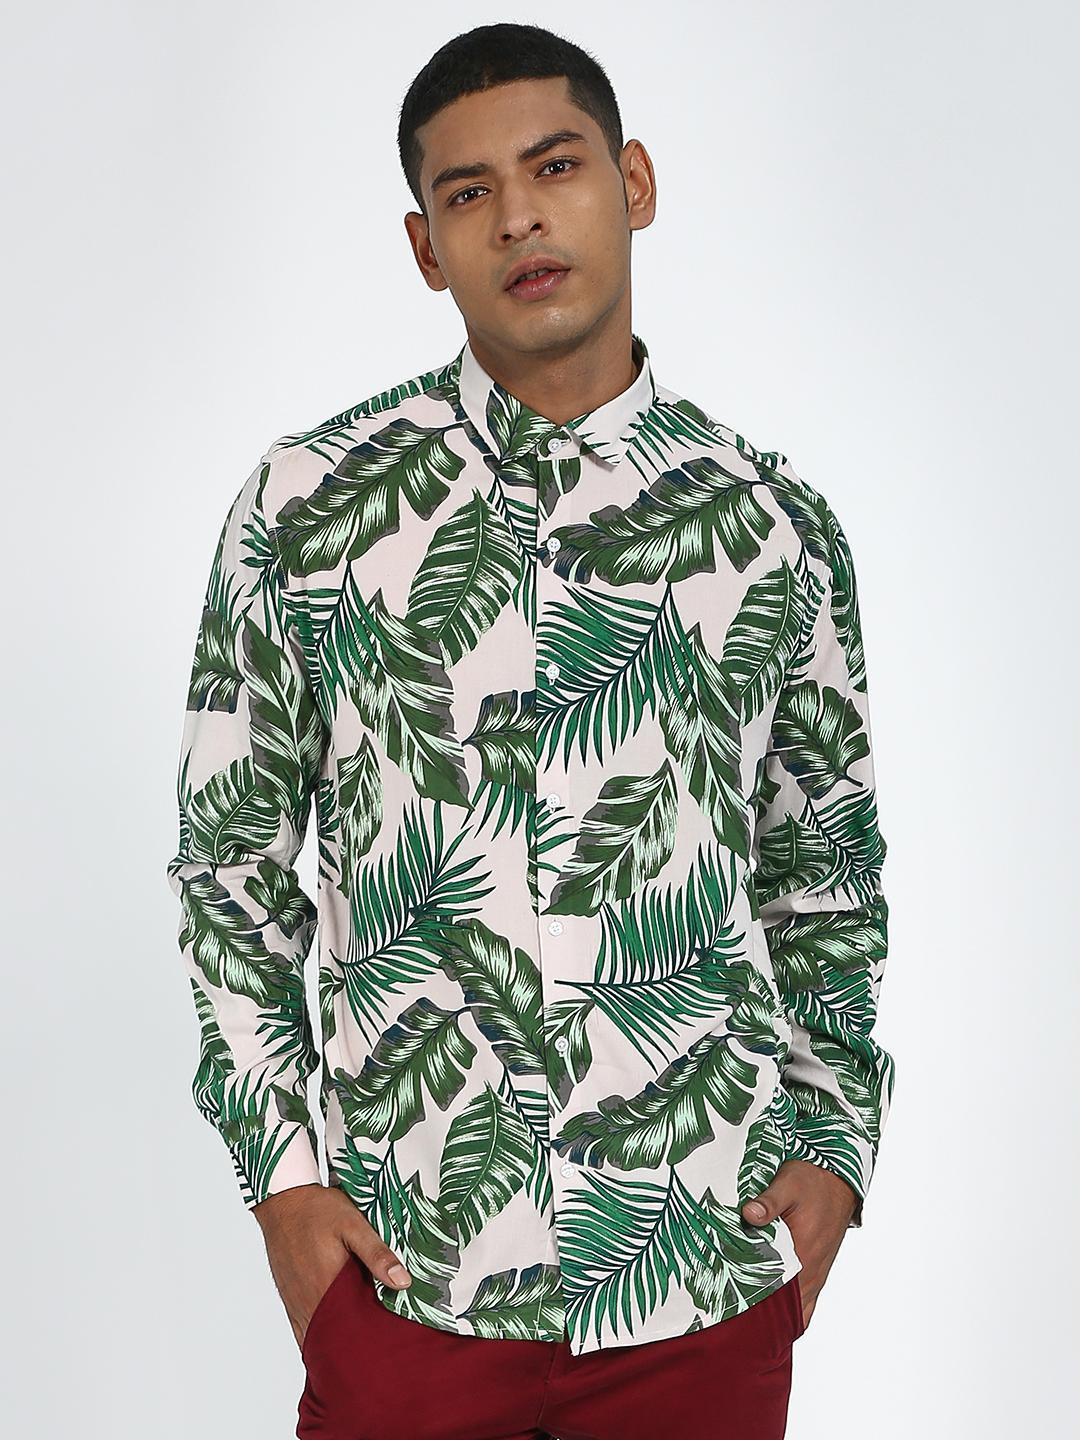 Green Hill Green All Over Printed Casual Shirt 1